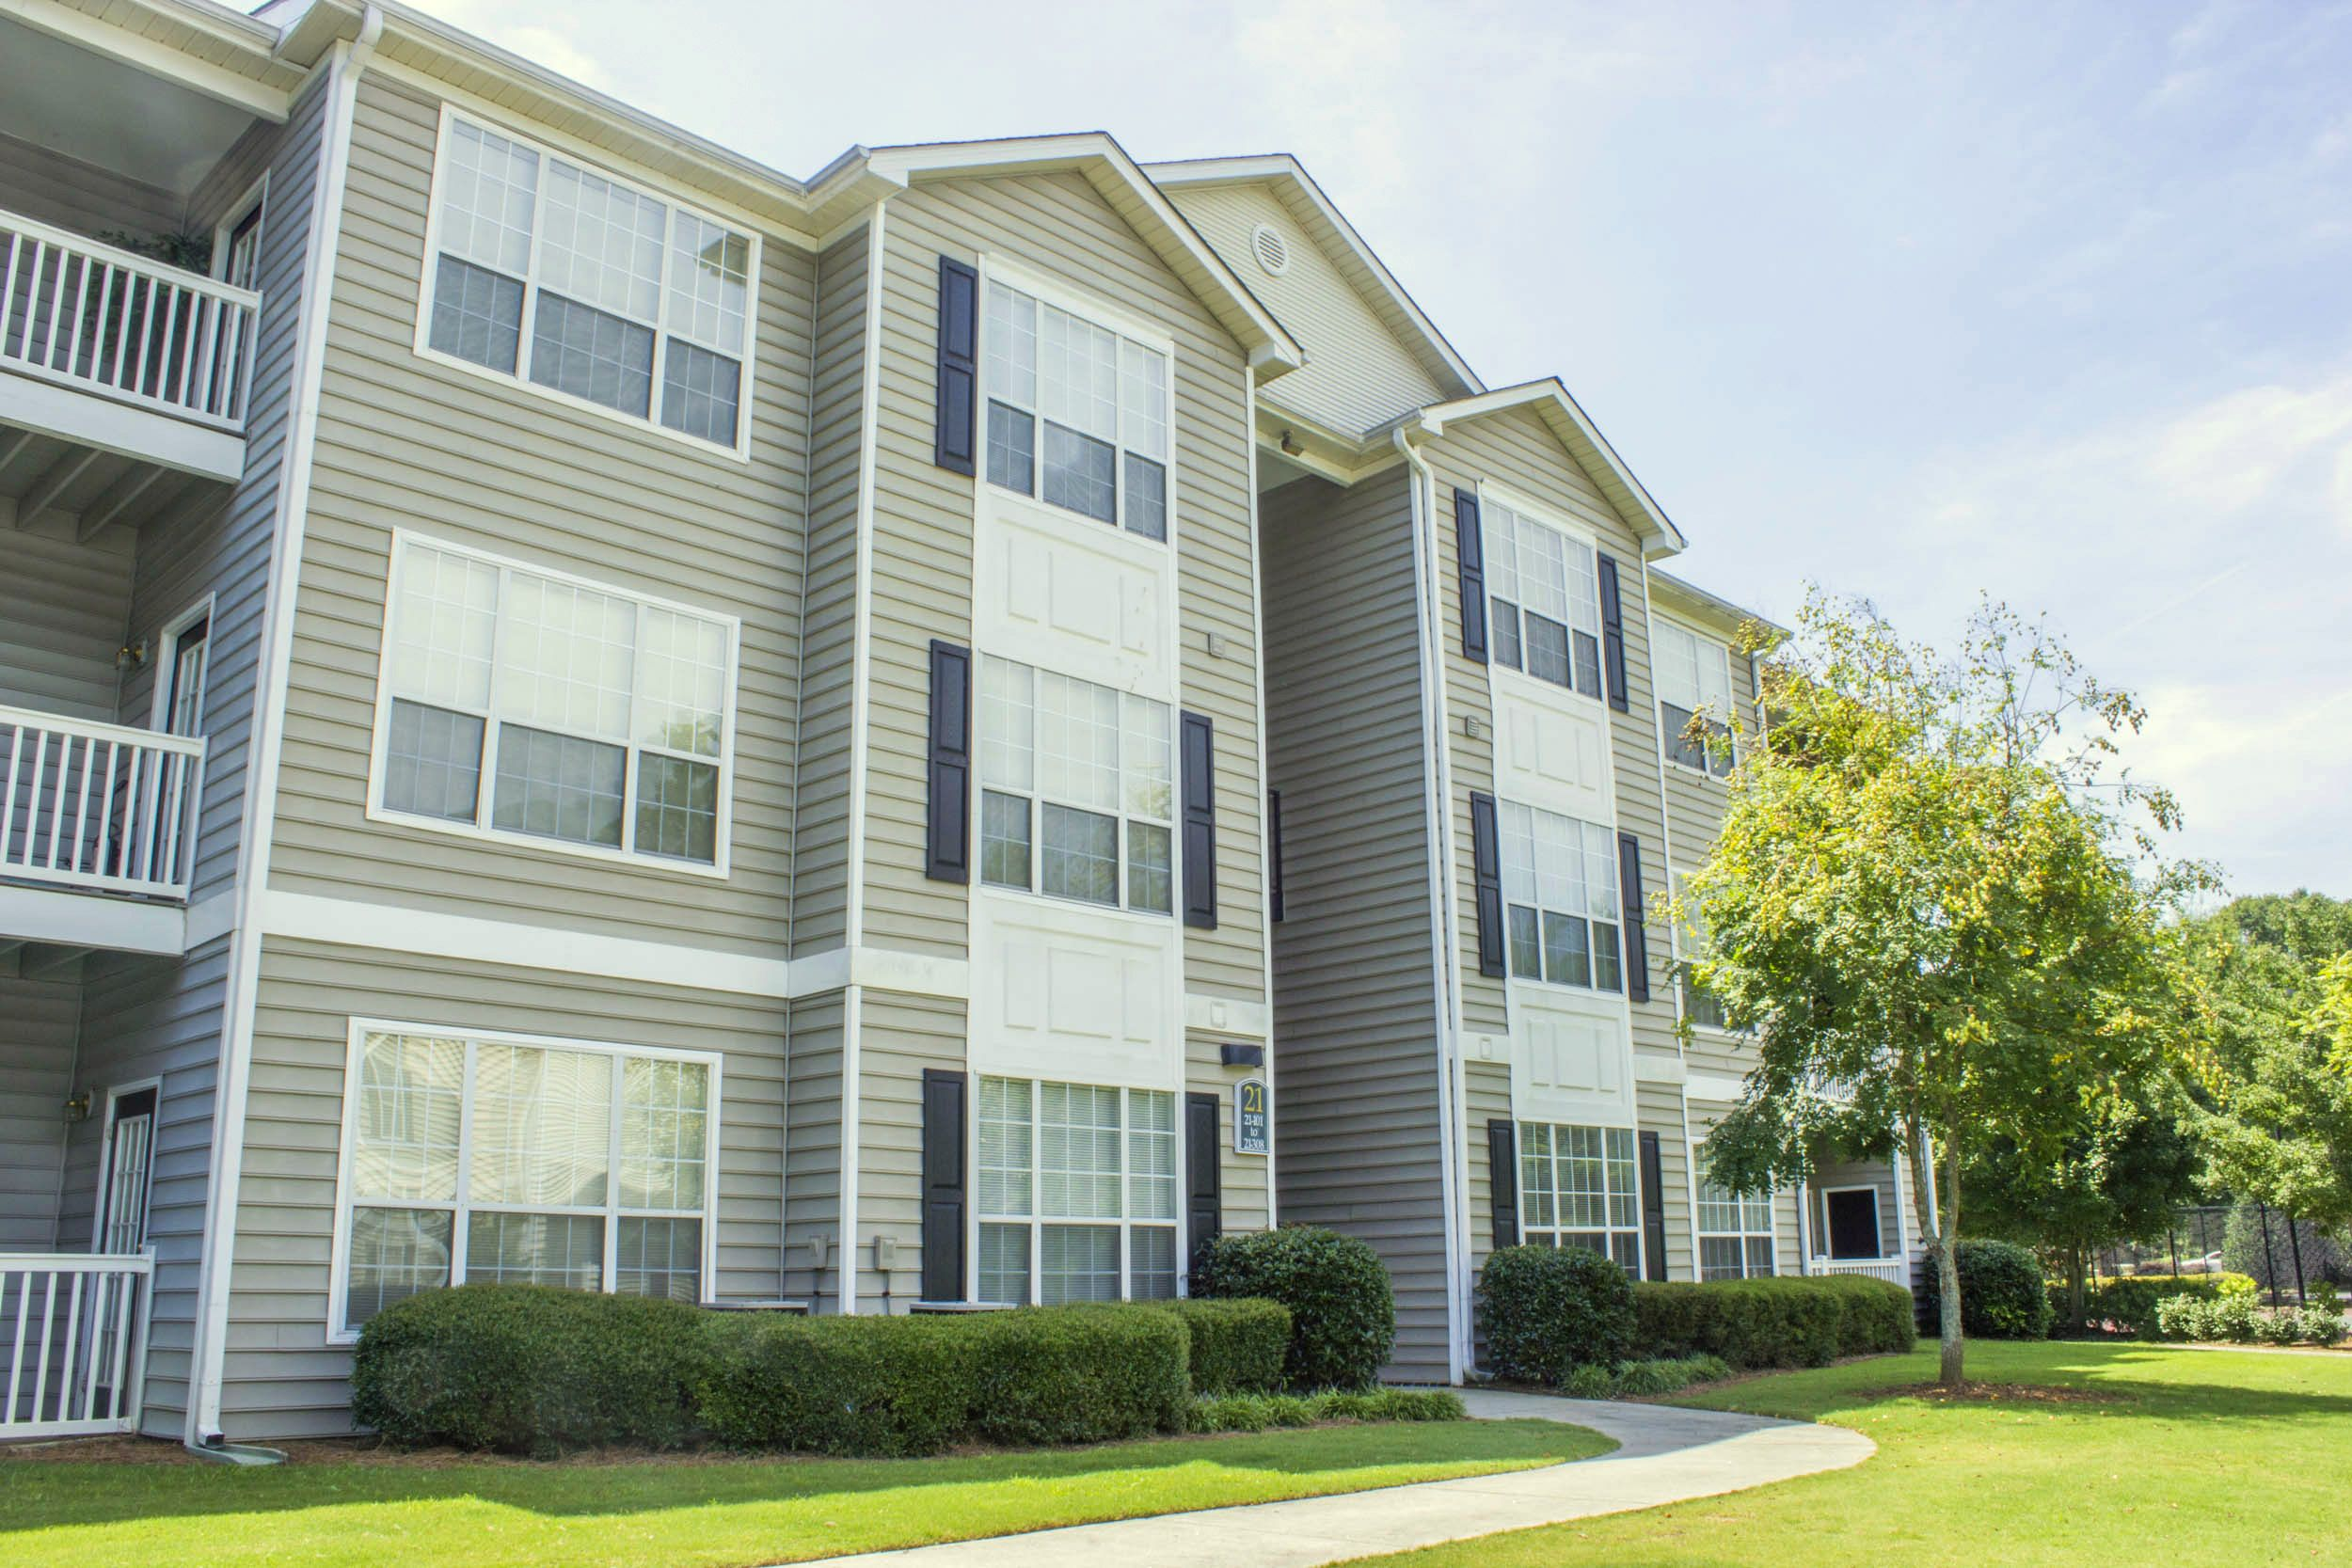 Lake St James Apartments In Conyers Ga Cottonwood Apartment Lake